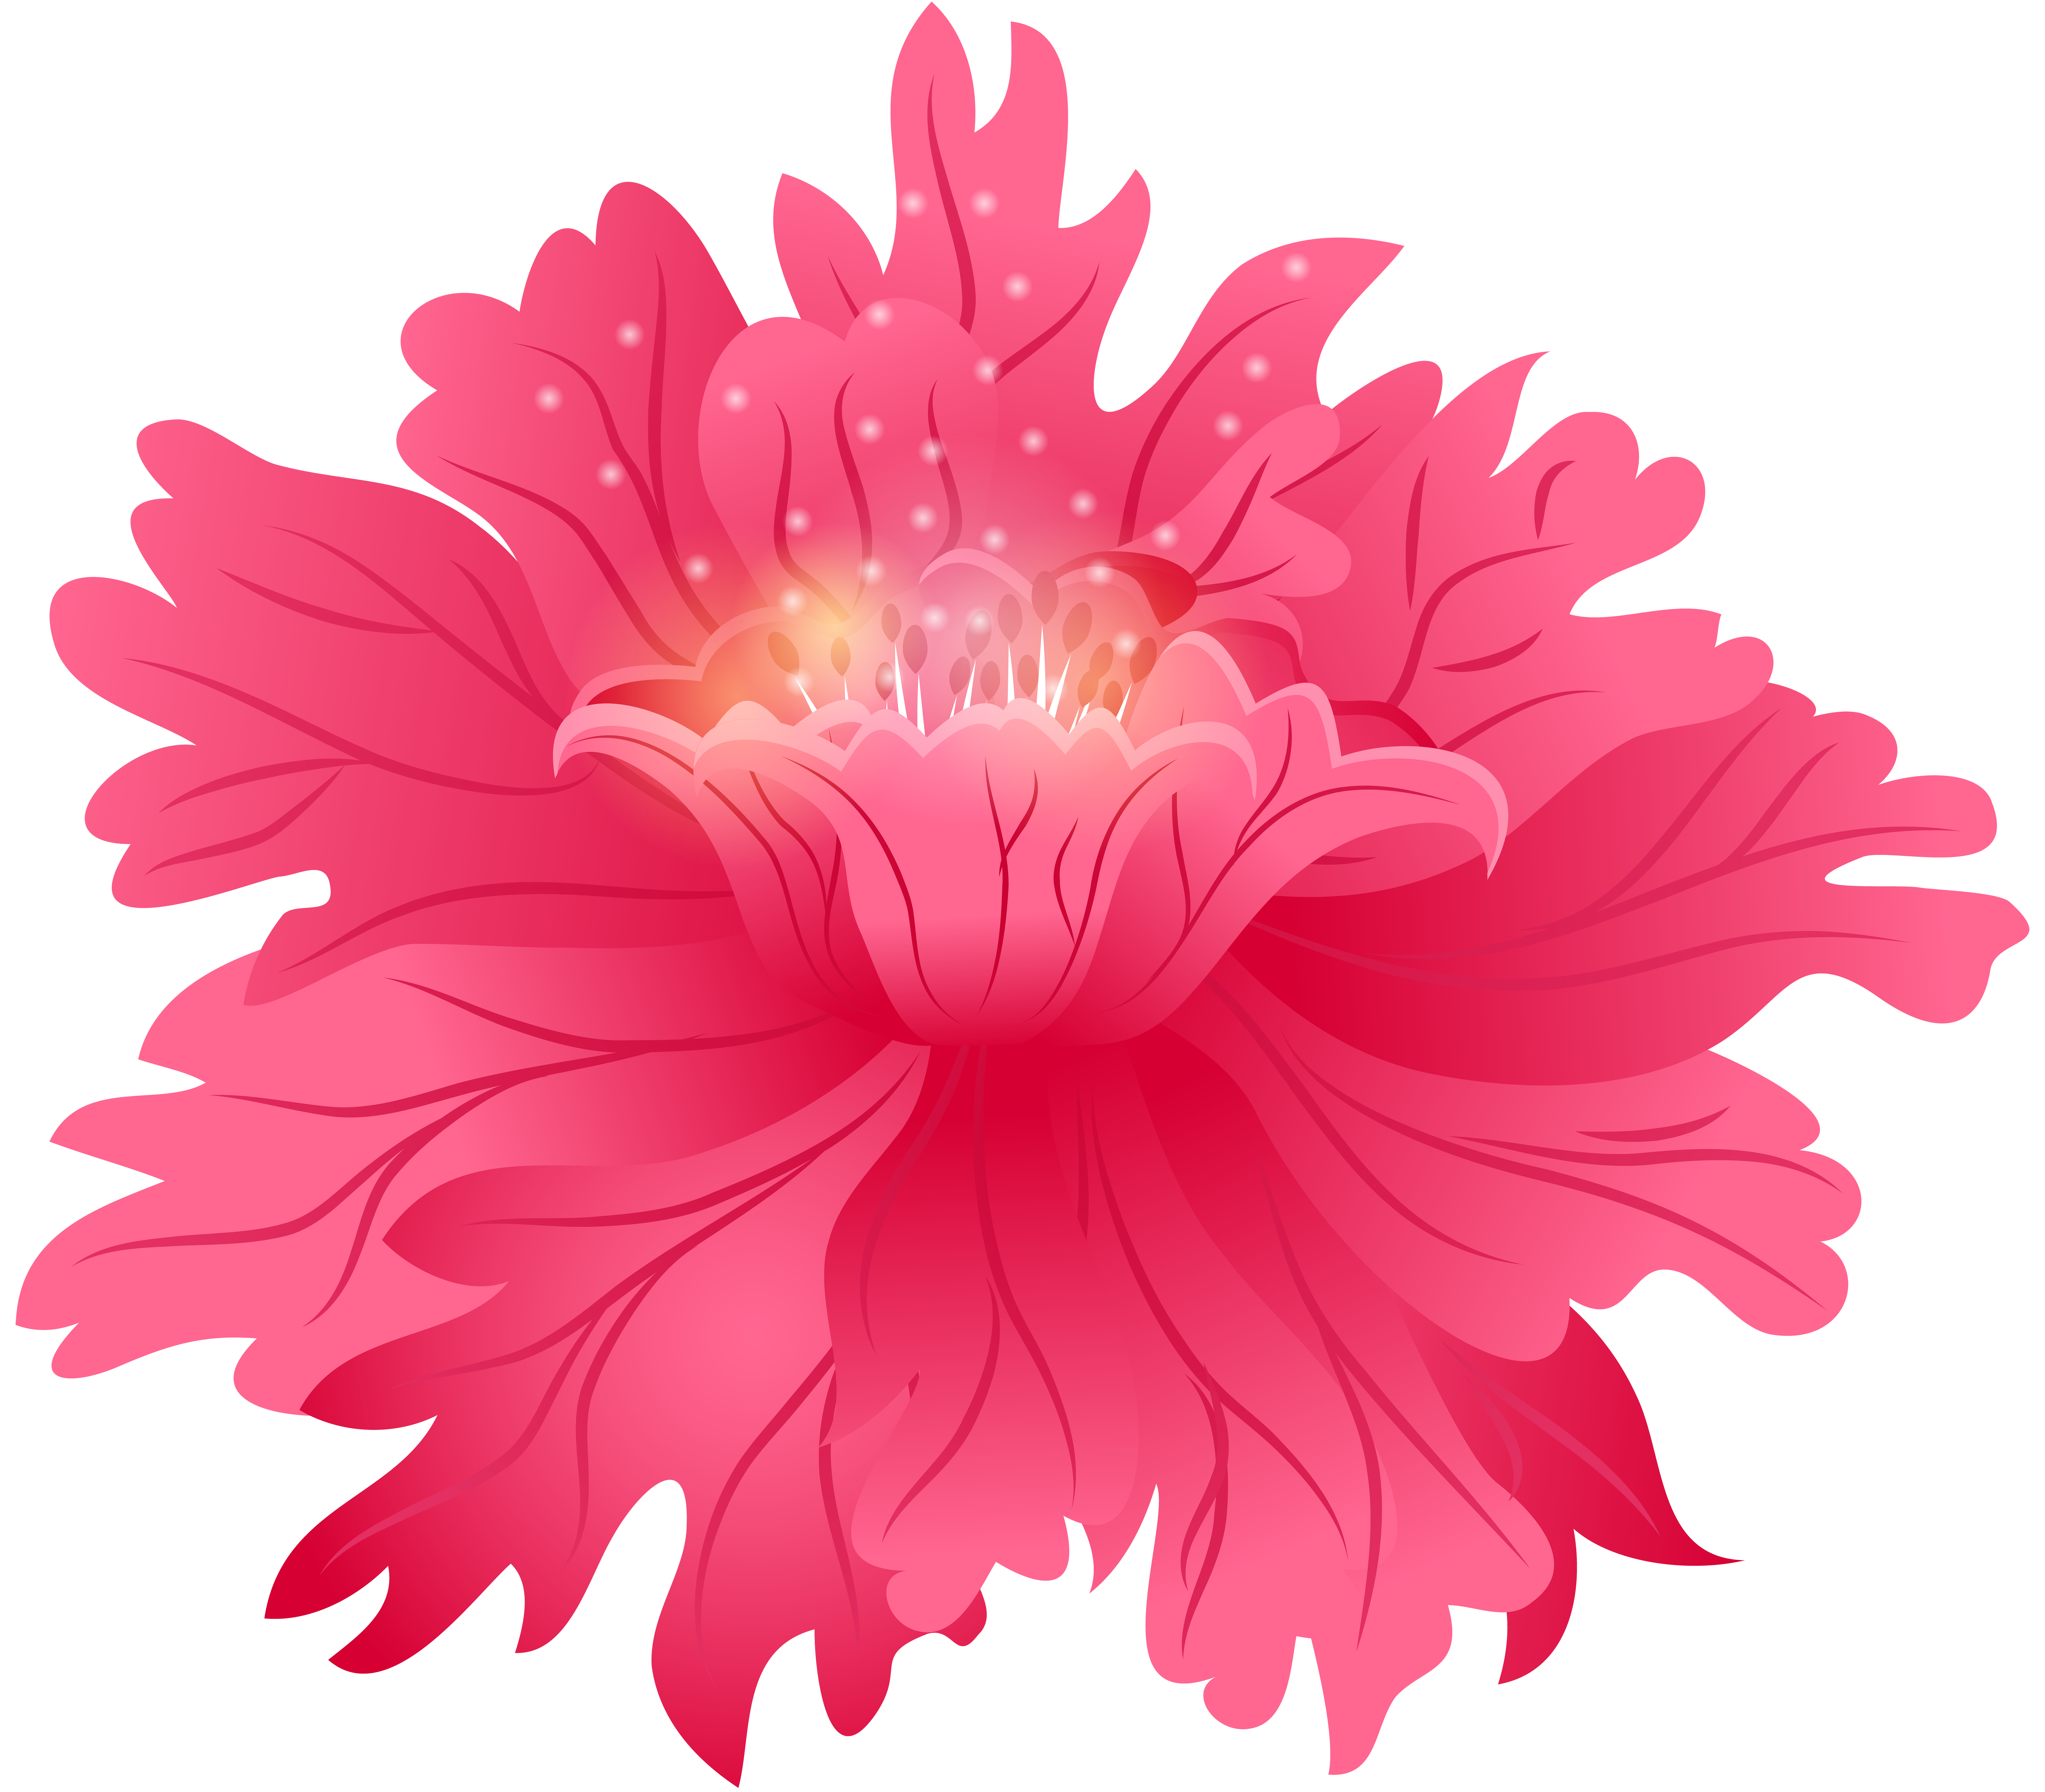 Aster flower clipart banner freeuse Red Flower PNG Clip Art Image | Gallery Yopriceville - High-Quality ... banner freeuse